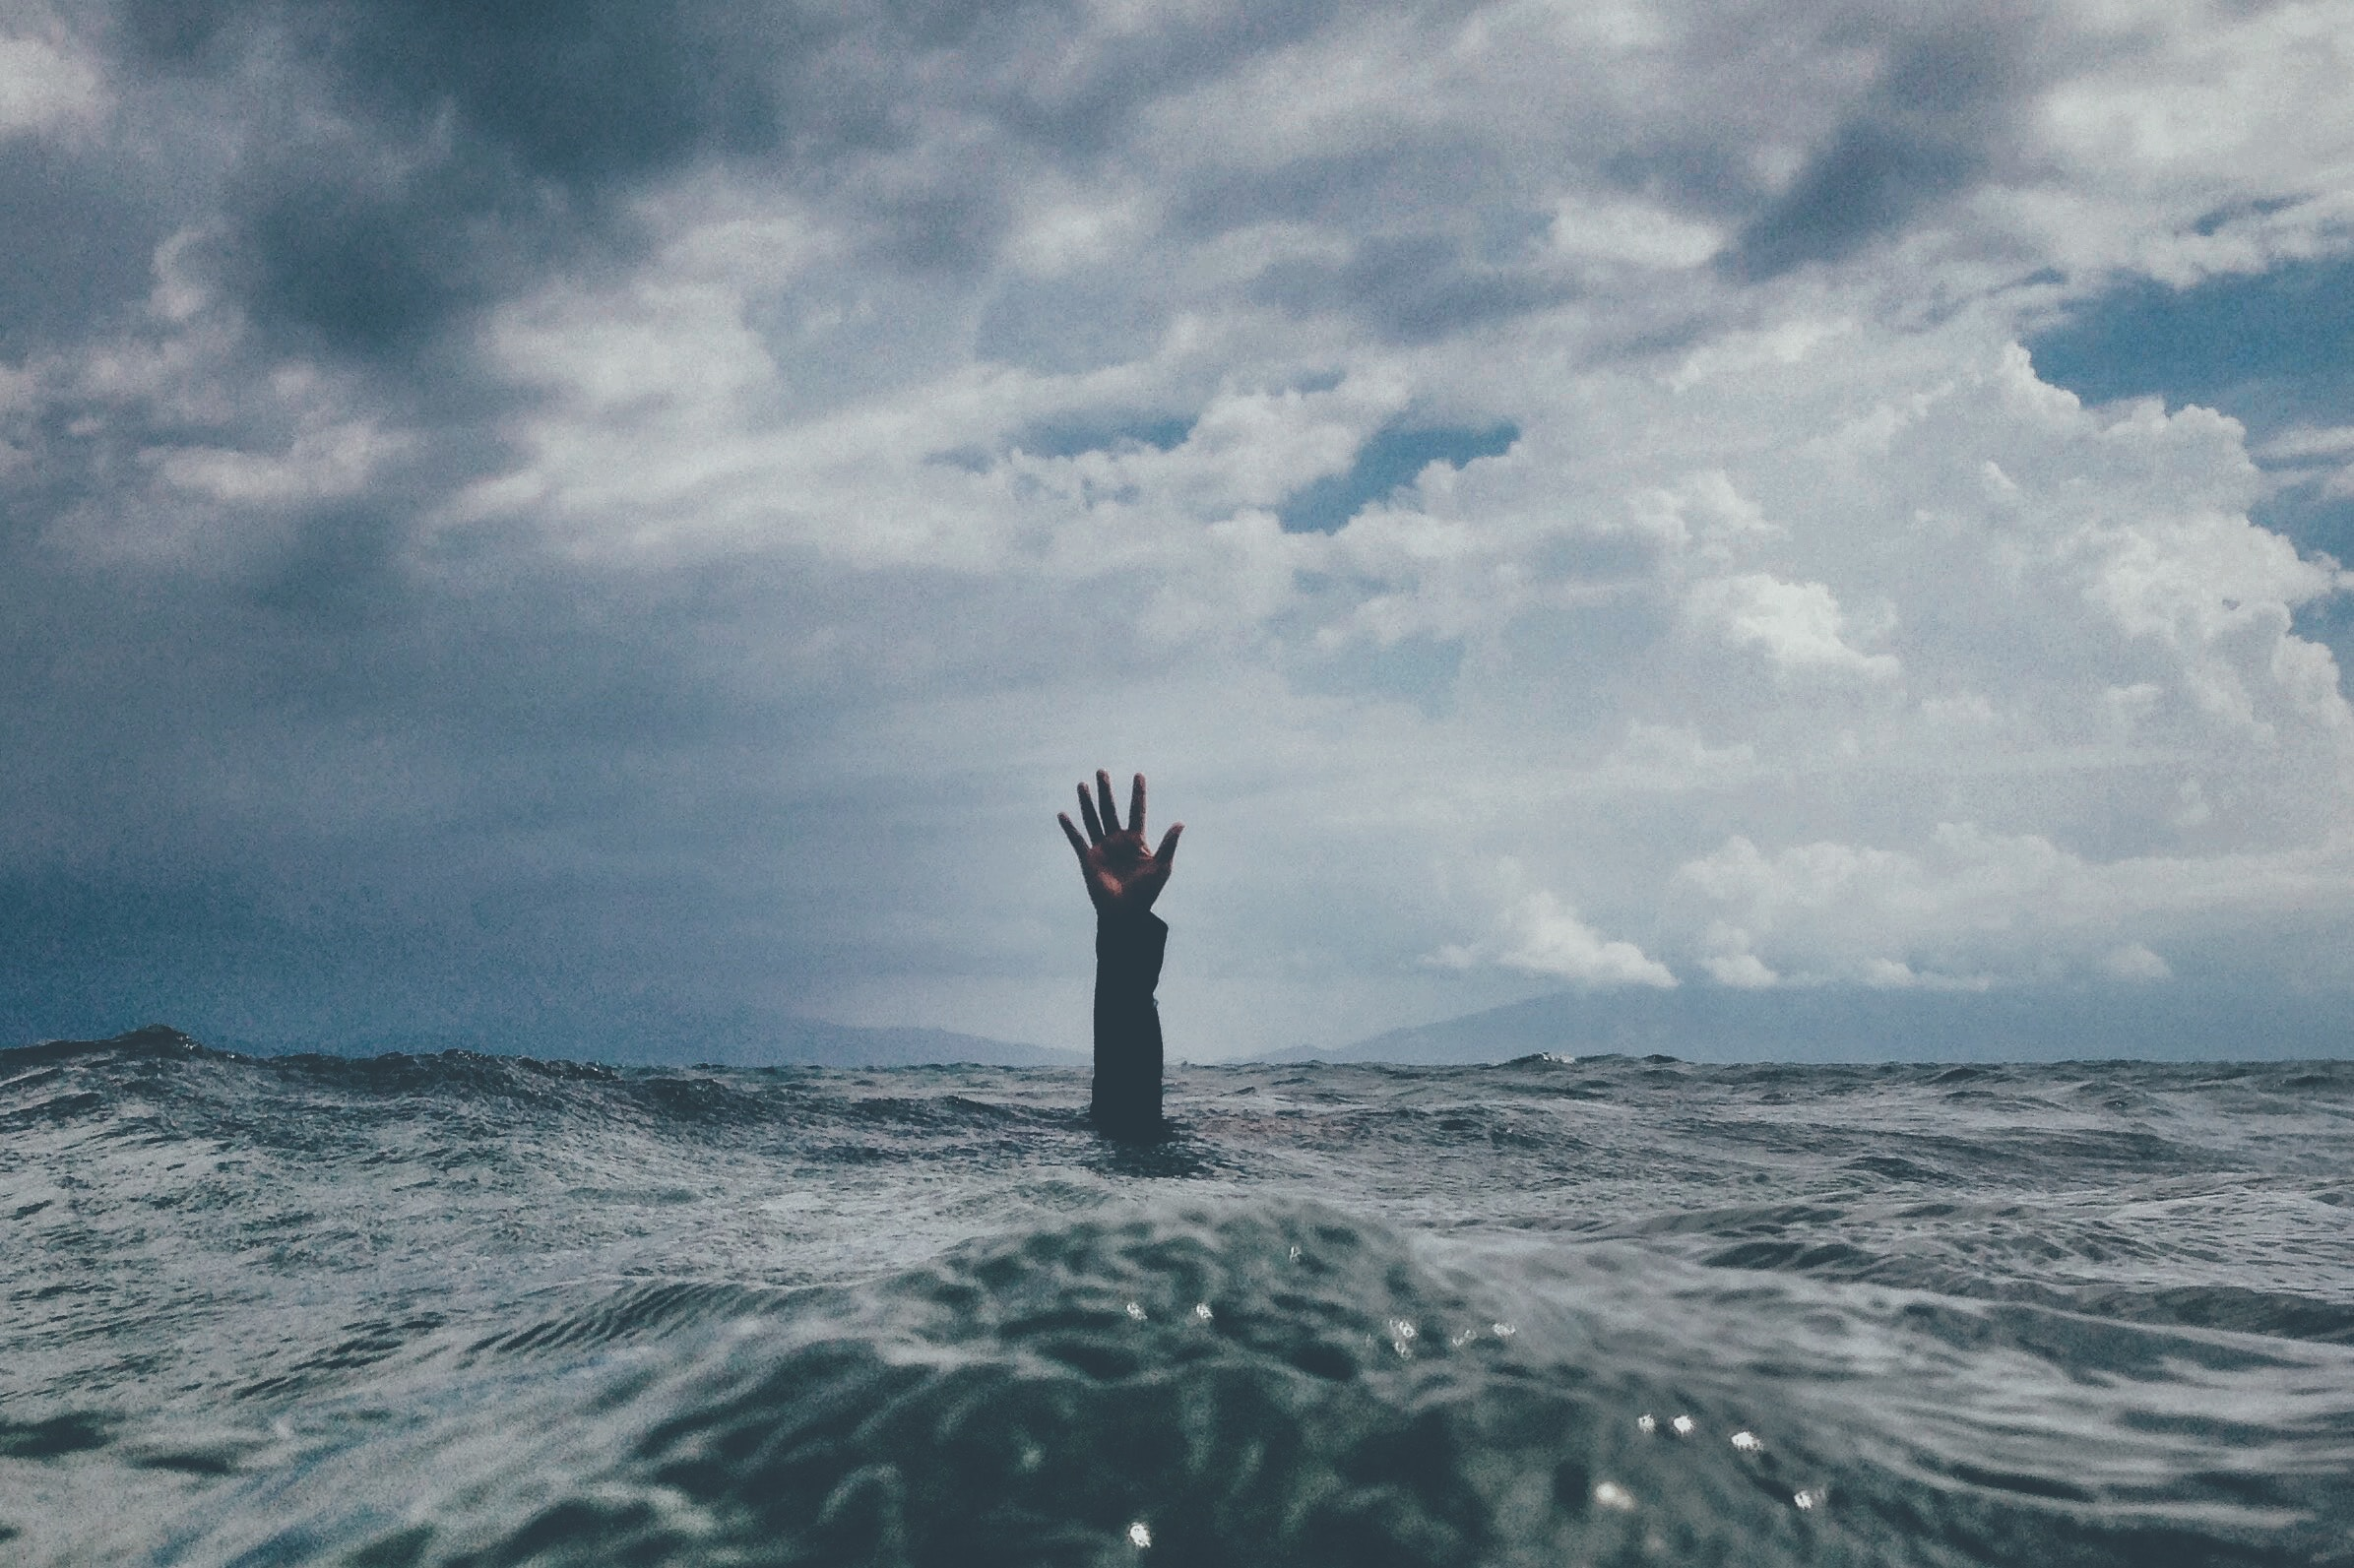 A hand emerging out of open water